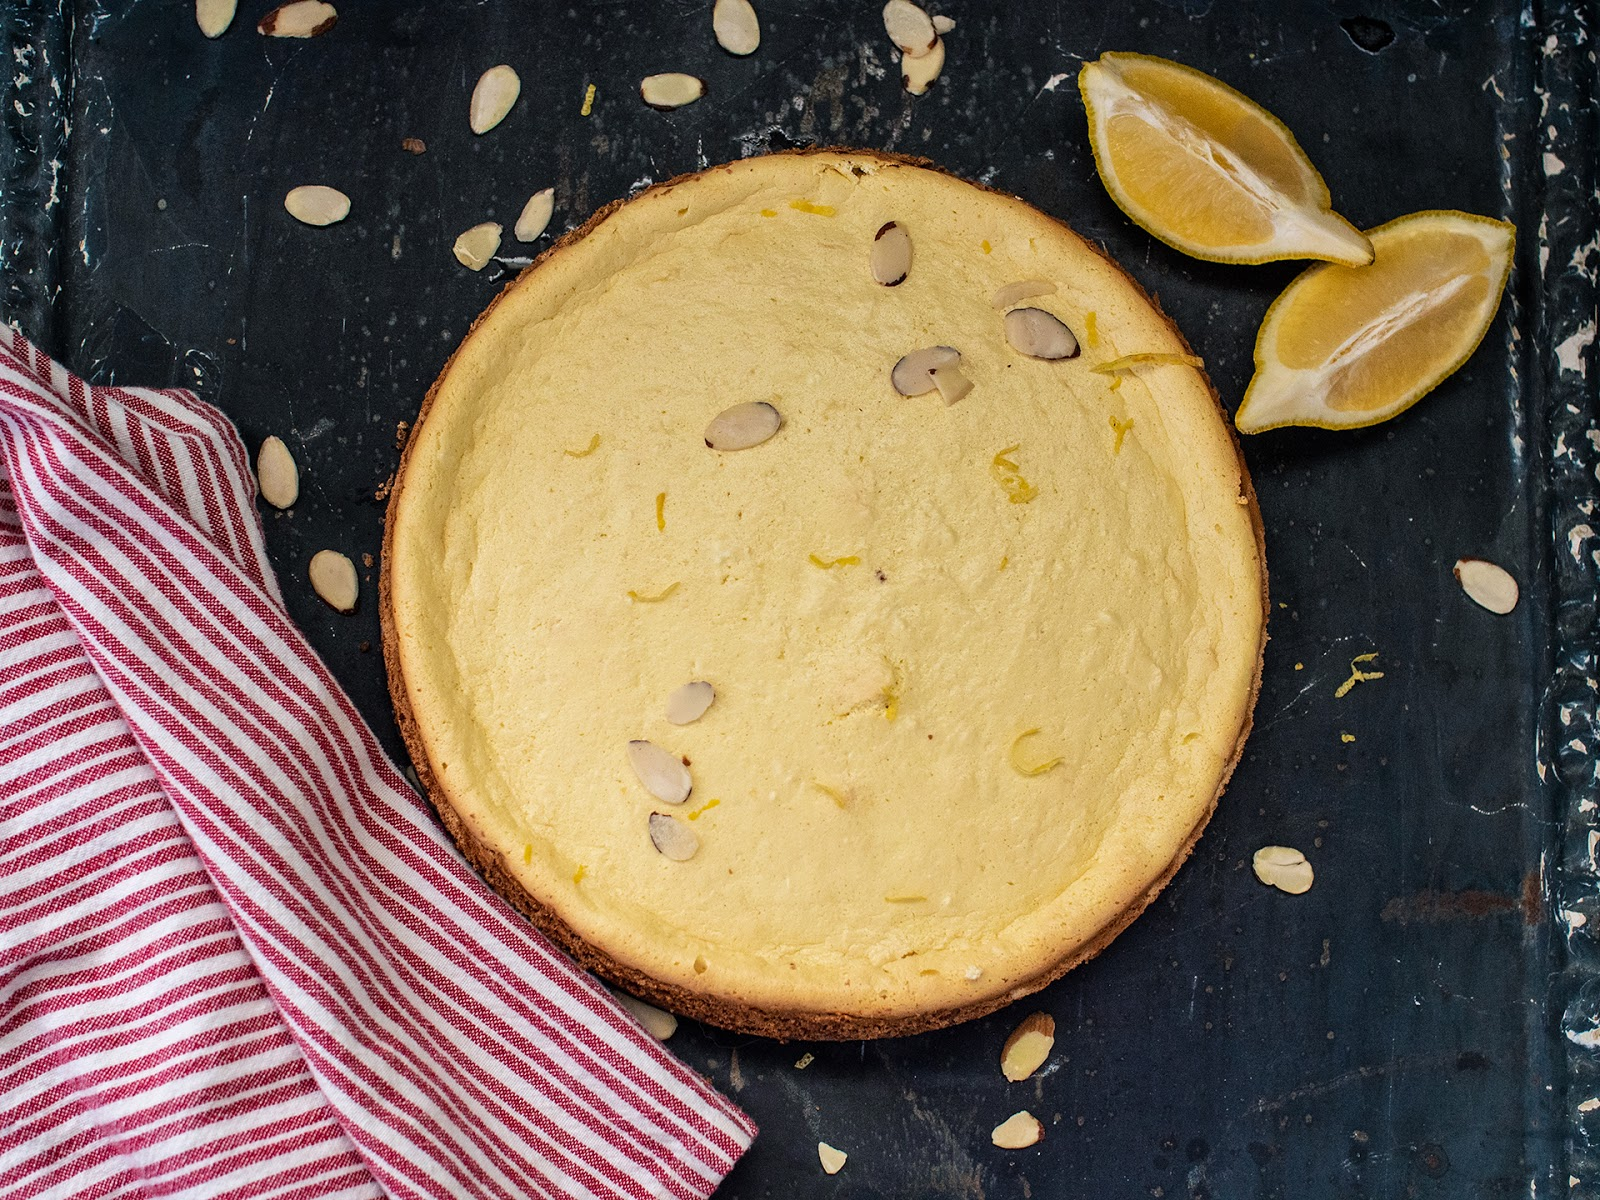 Lemon Ricotta Cheesecake with Almond Cookie Crust | Local Food Rocks